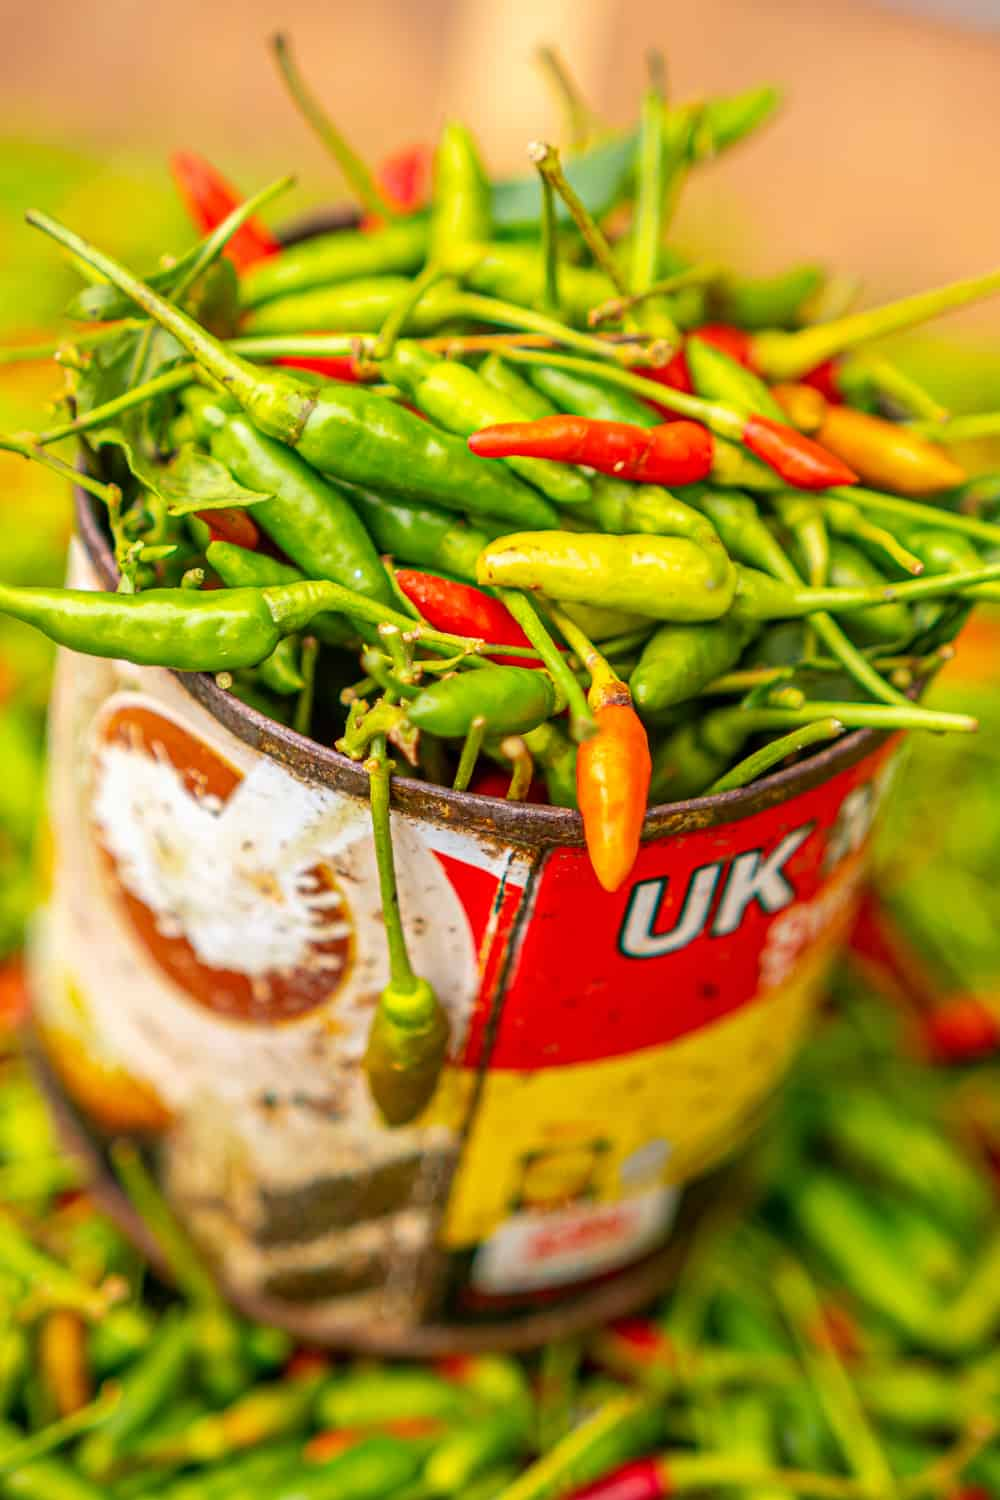 chilli in a can